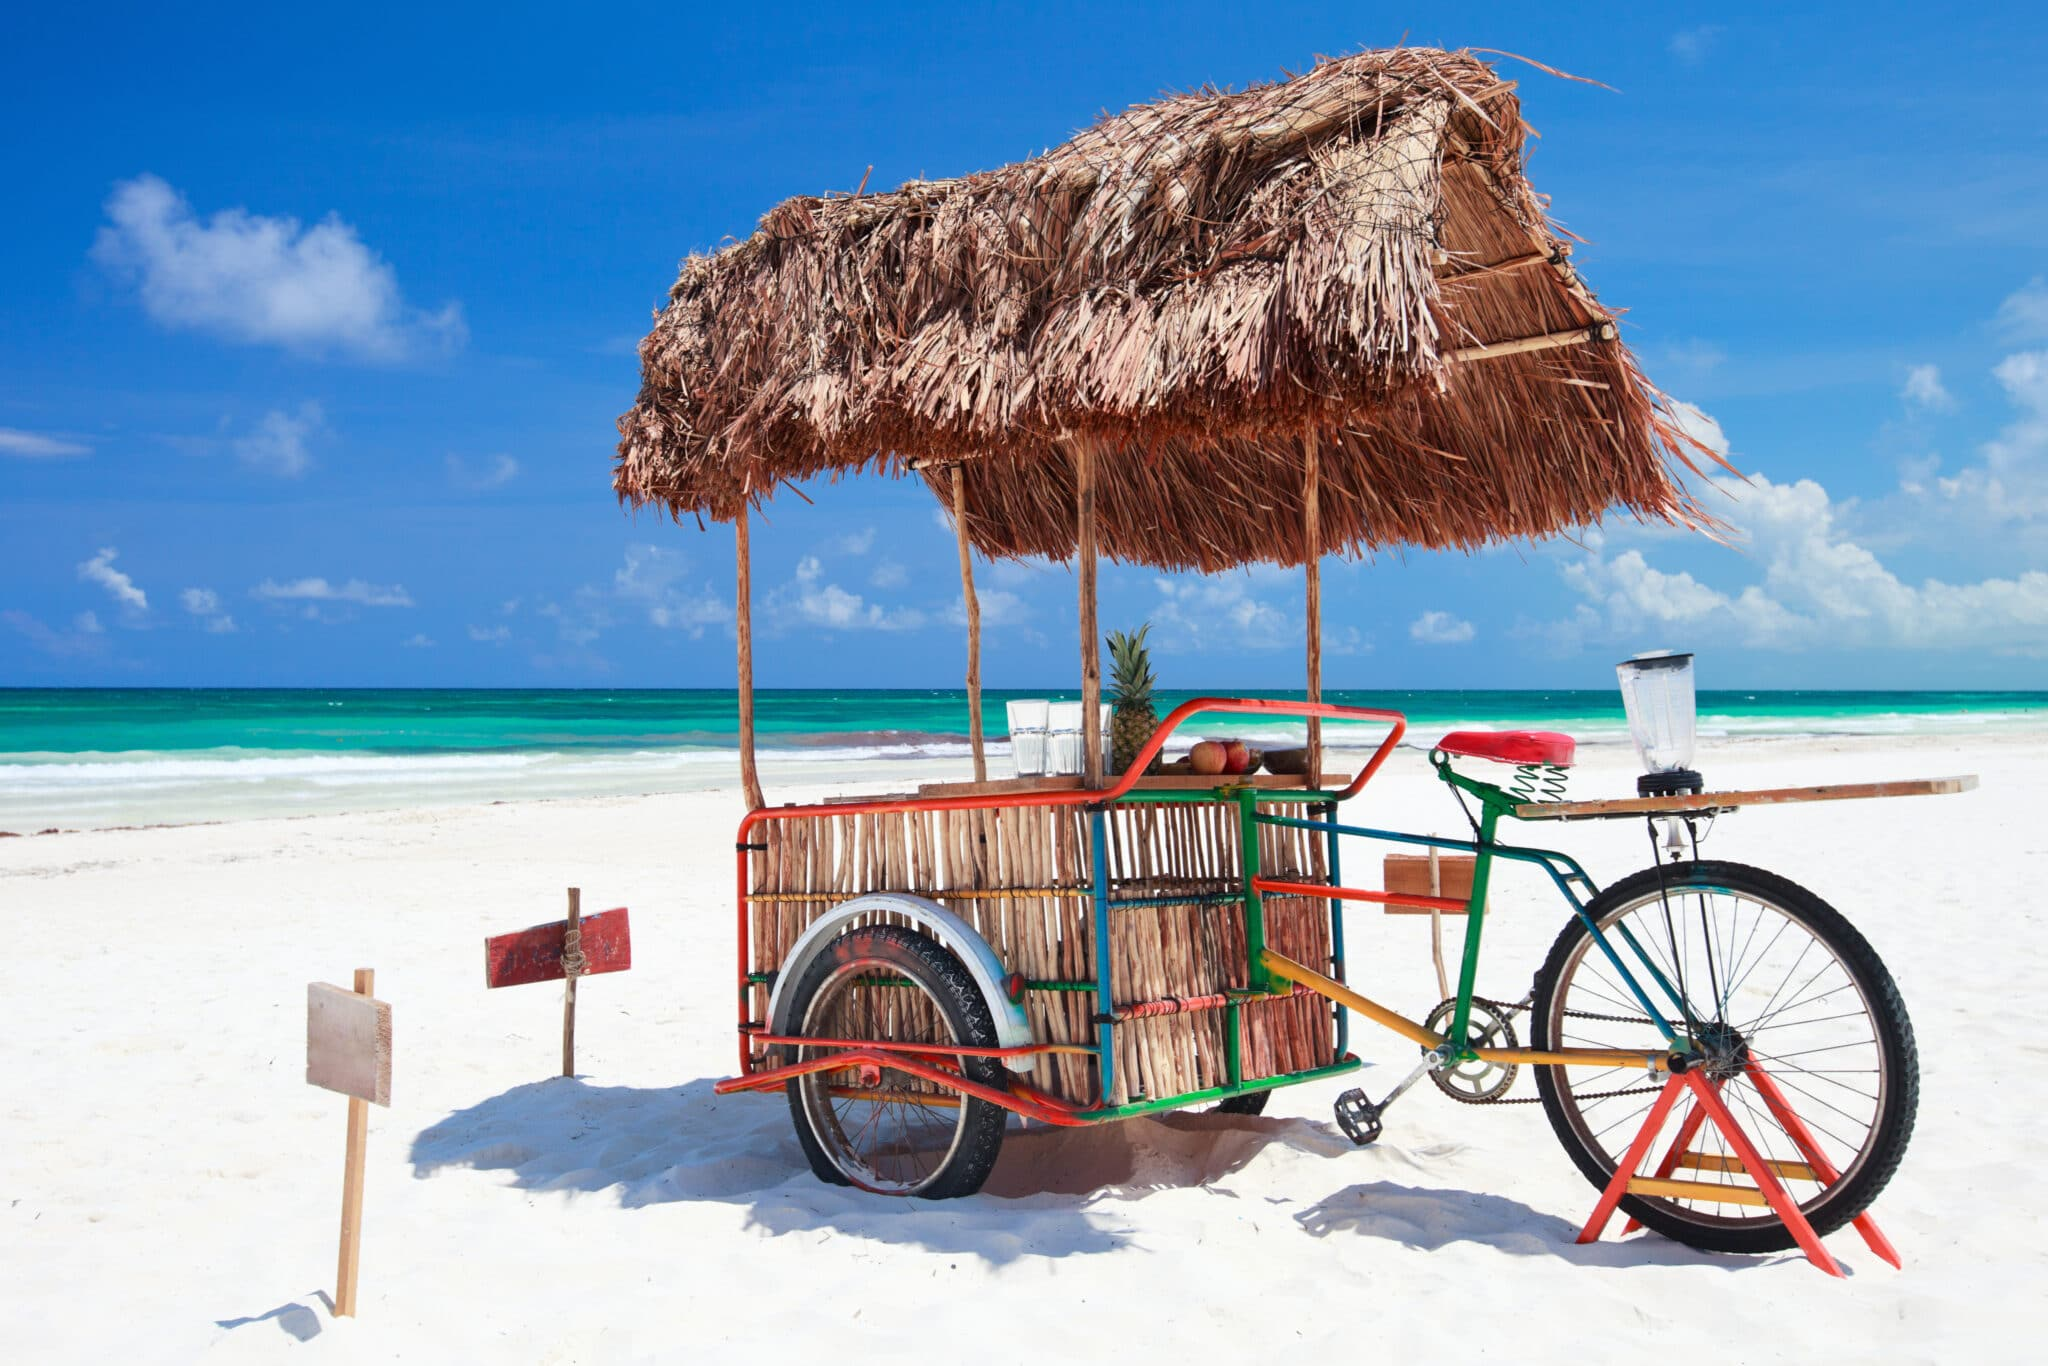 Bike and cart on beach in Tulum Mexico